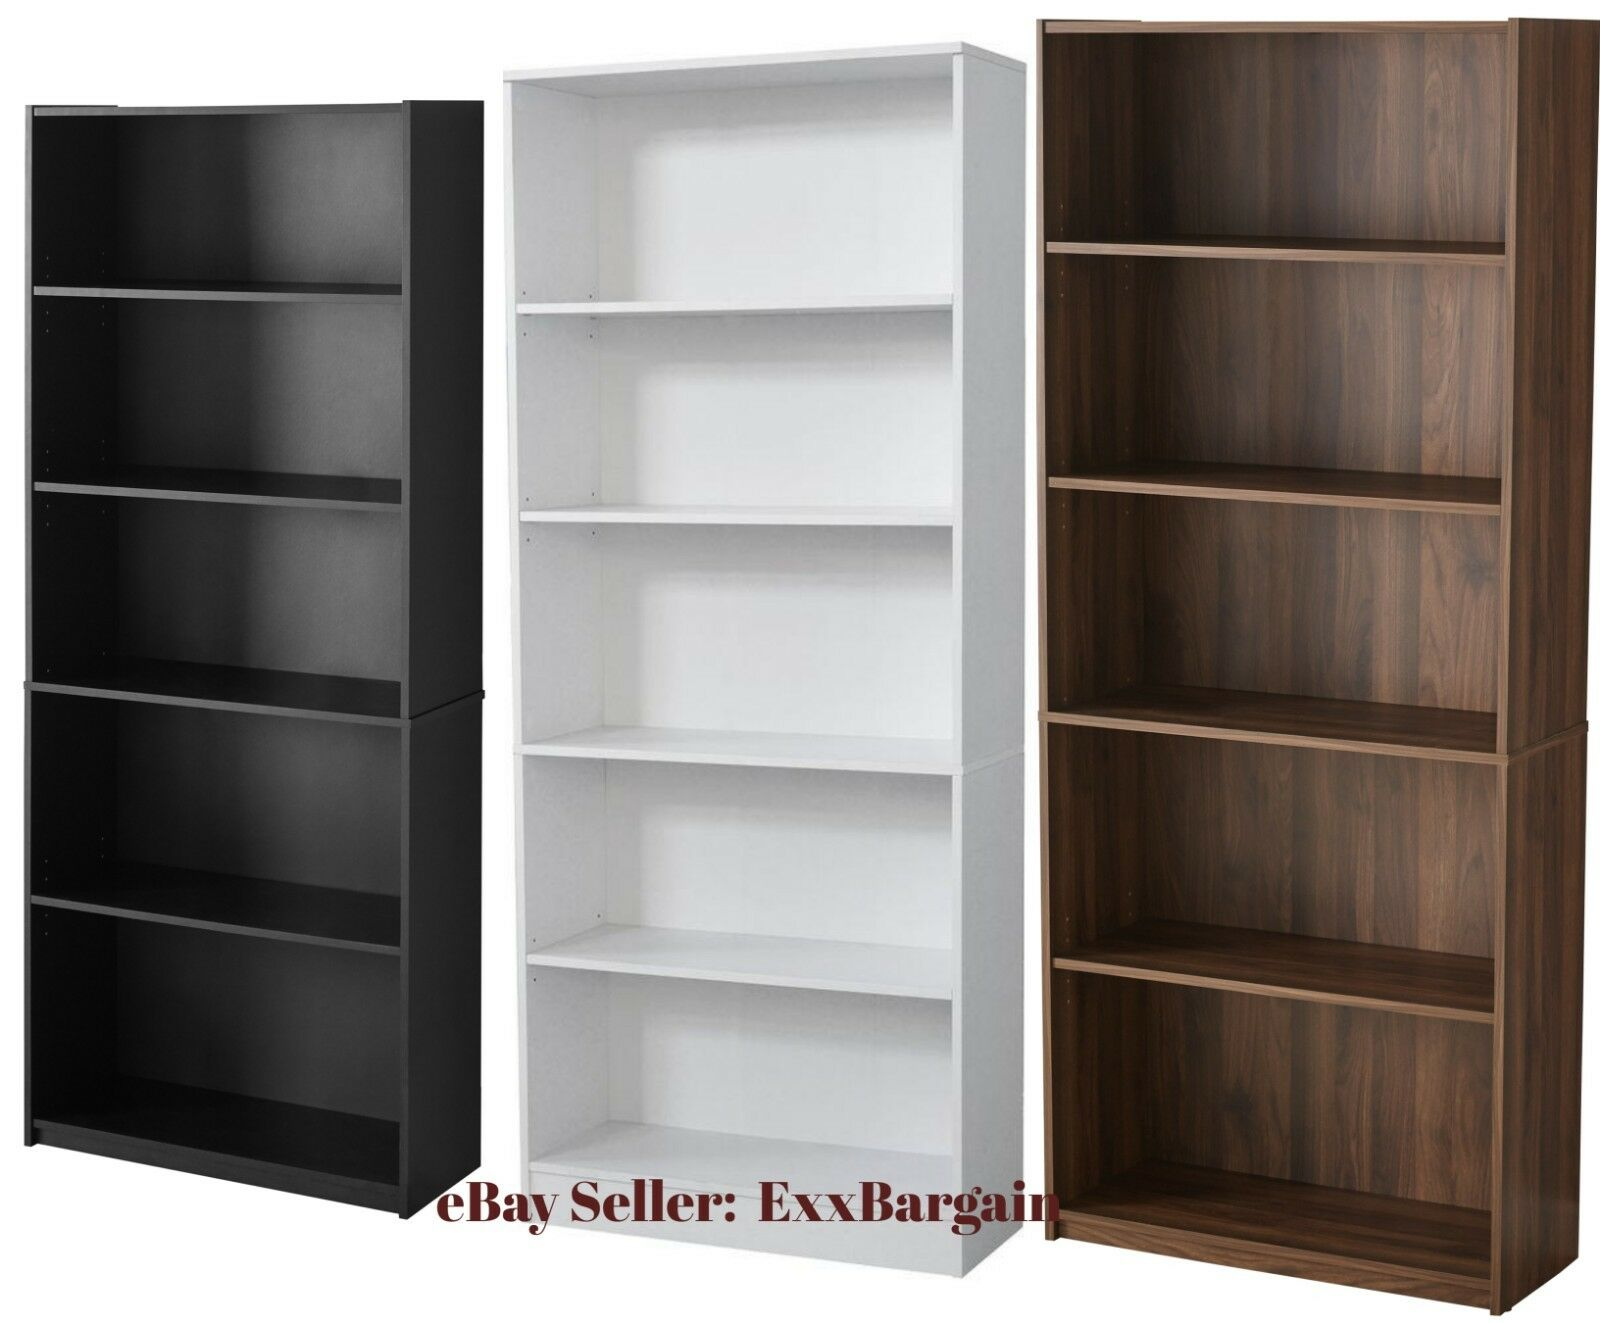 Adjustable 5-Shelf Wood Bookcase Storage Shelving Book Wide